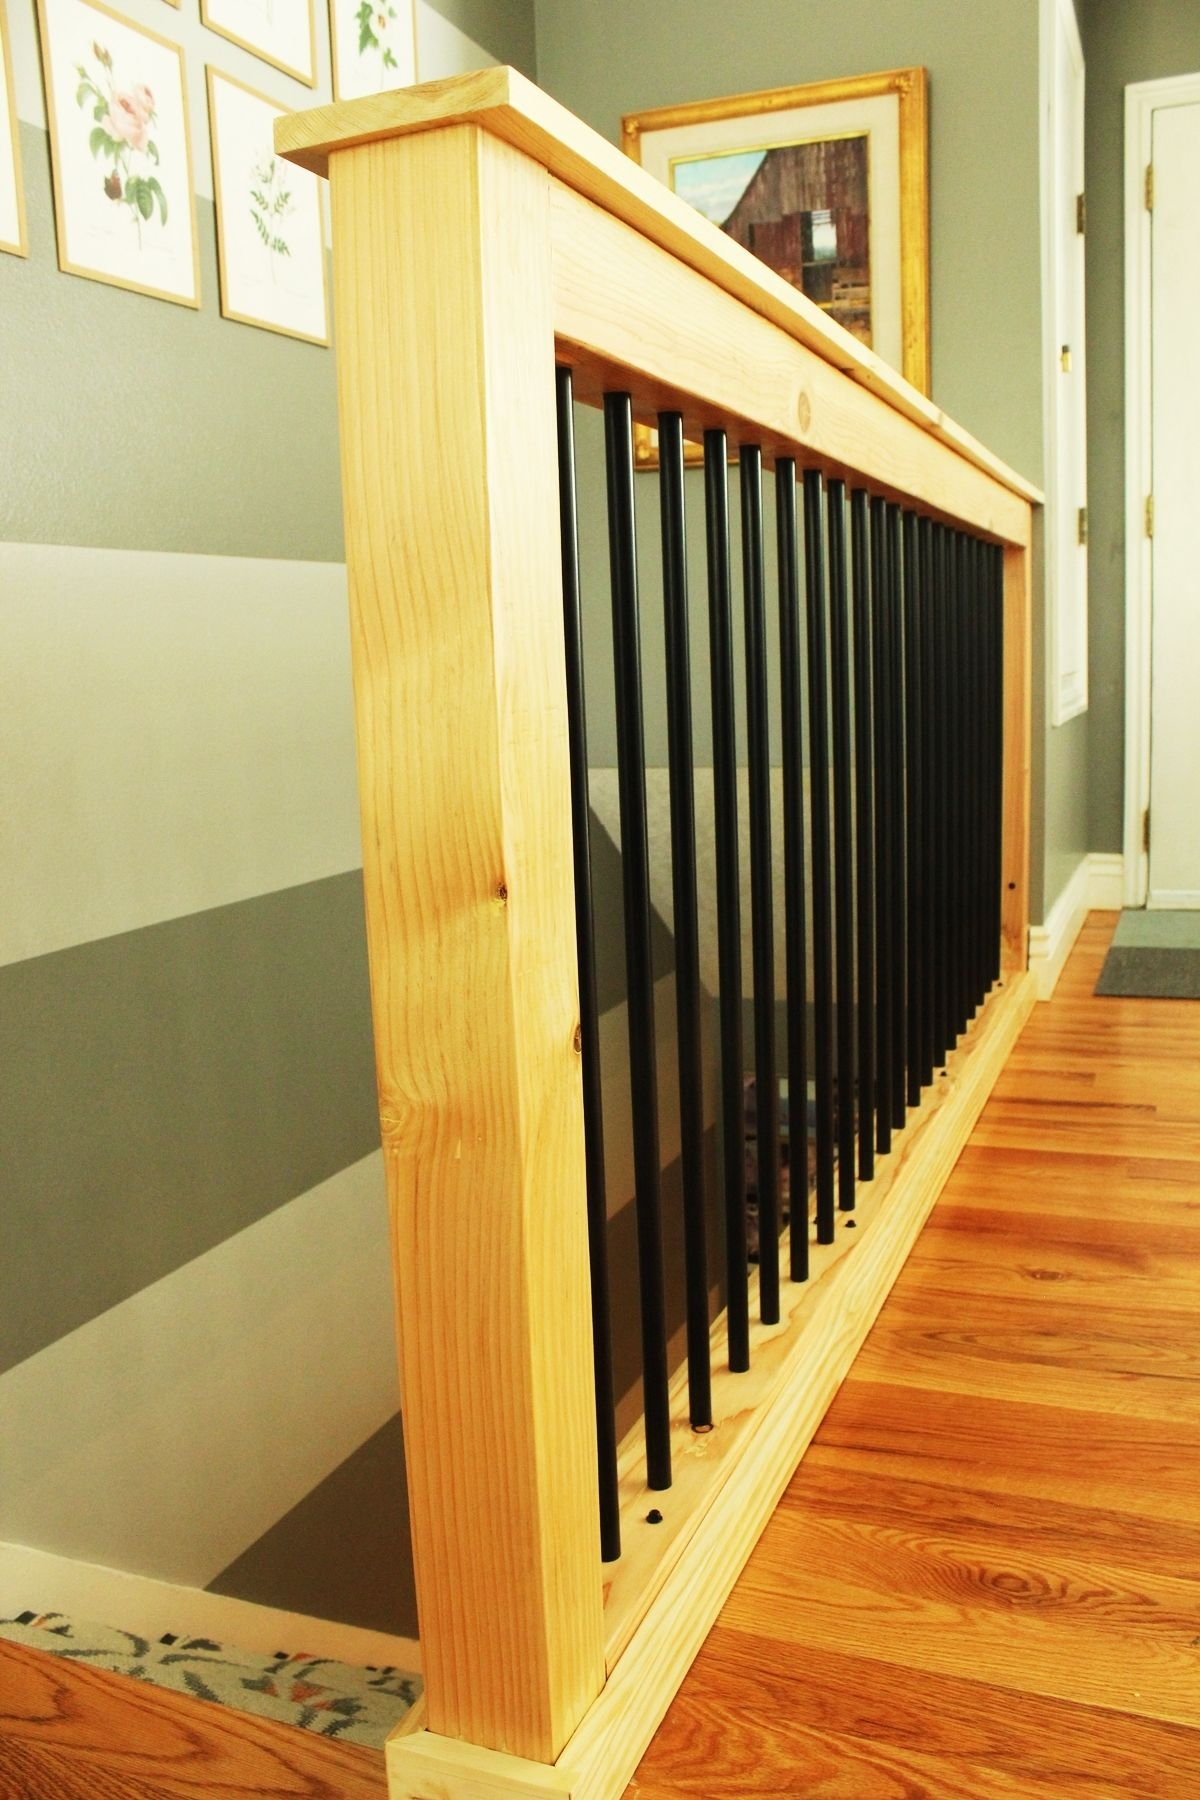 Diy Stair Handrail With Industrial Pipes And Wood | Industrial Pipe Stair Railing | Threaded Pipe | Rail | Banister | Galvanized Pipe | Wall